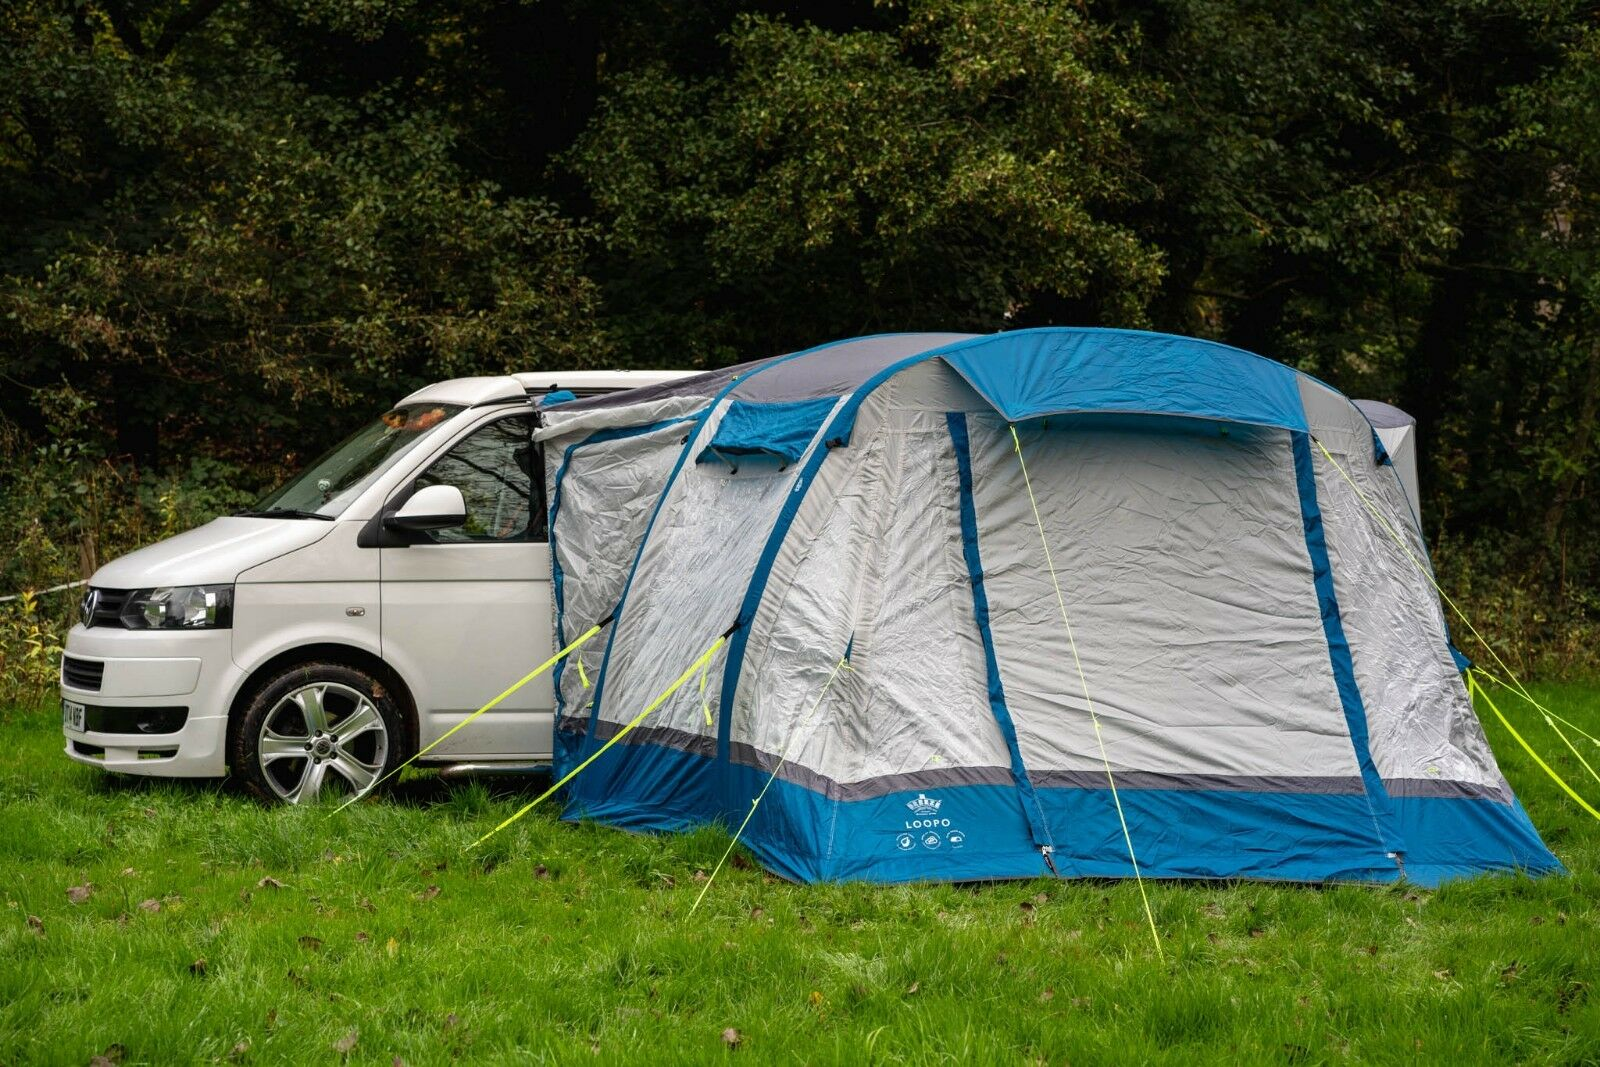 INFLATABLE CAMPER VAN DRIVE AWAY AWNING - OLPRO LOOPO BREEZE (blueE & GREY)